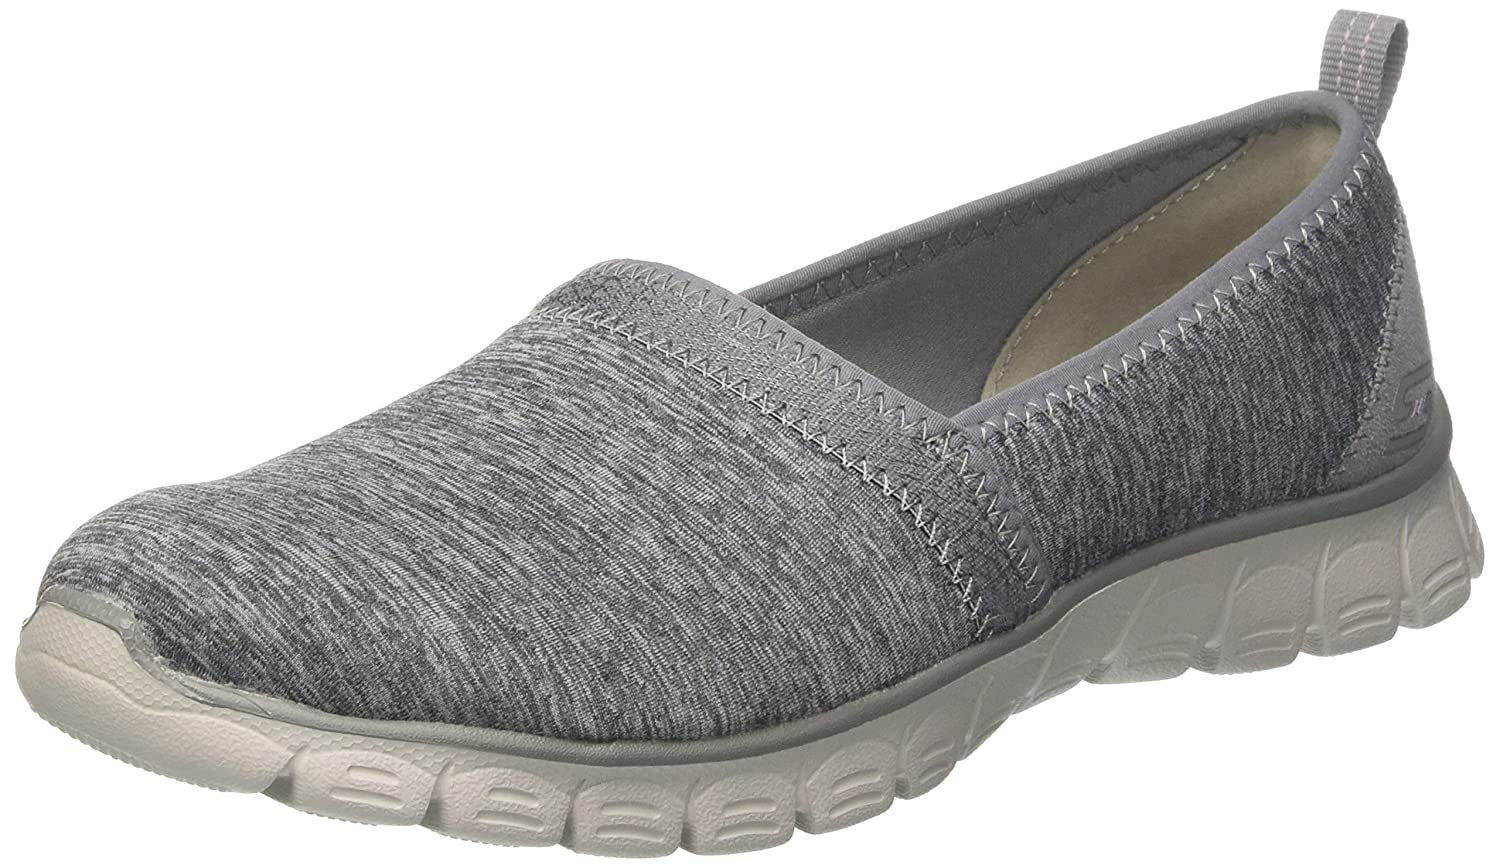 Skechers Womens Ez Flex 3.0 - Swift Motion Slip On Trainers